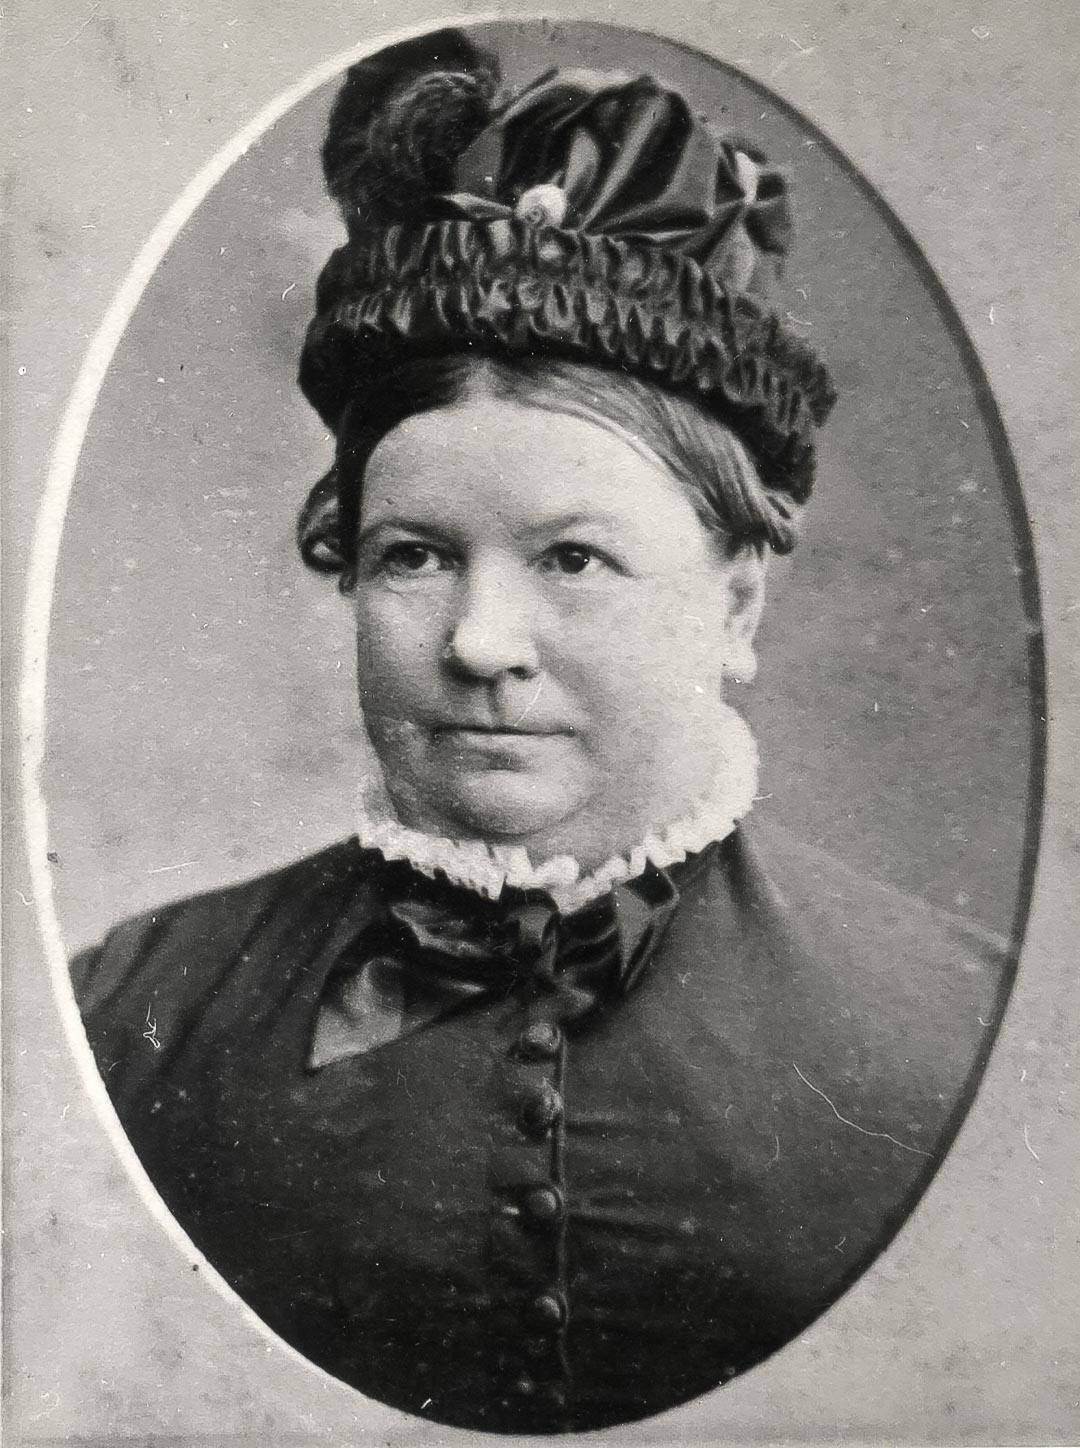 Catherine Draper (nee Chester), (1828 -1884) of 'Charnwood'. Photographed shortly before she died, aged only 56.  Catherine was a descendant of William Chester of Chipping-Barnet, the ancestor of the Chesters of Blaby in Leicestershire, UK.  Their arms bore 'Ermine, on a chief sable a griffin passant Argent'.  Many descendants of the Chesters of Blaby can today be found in Connecticut, USA.